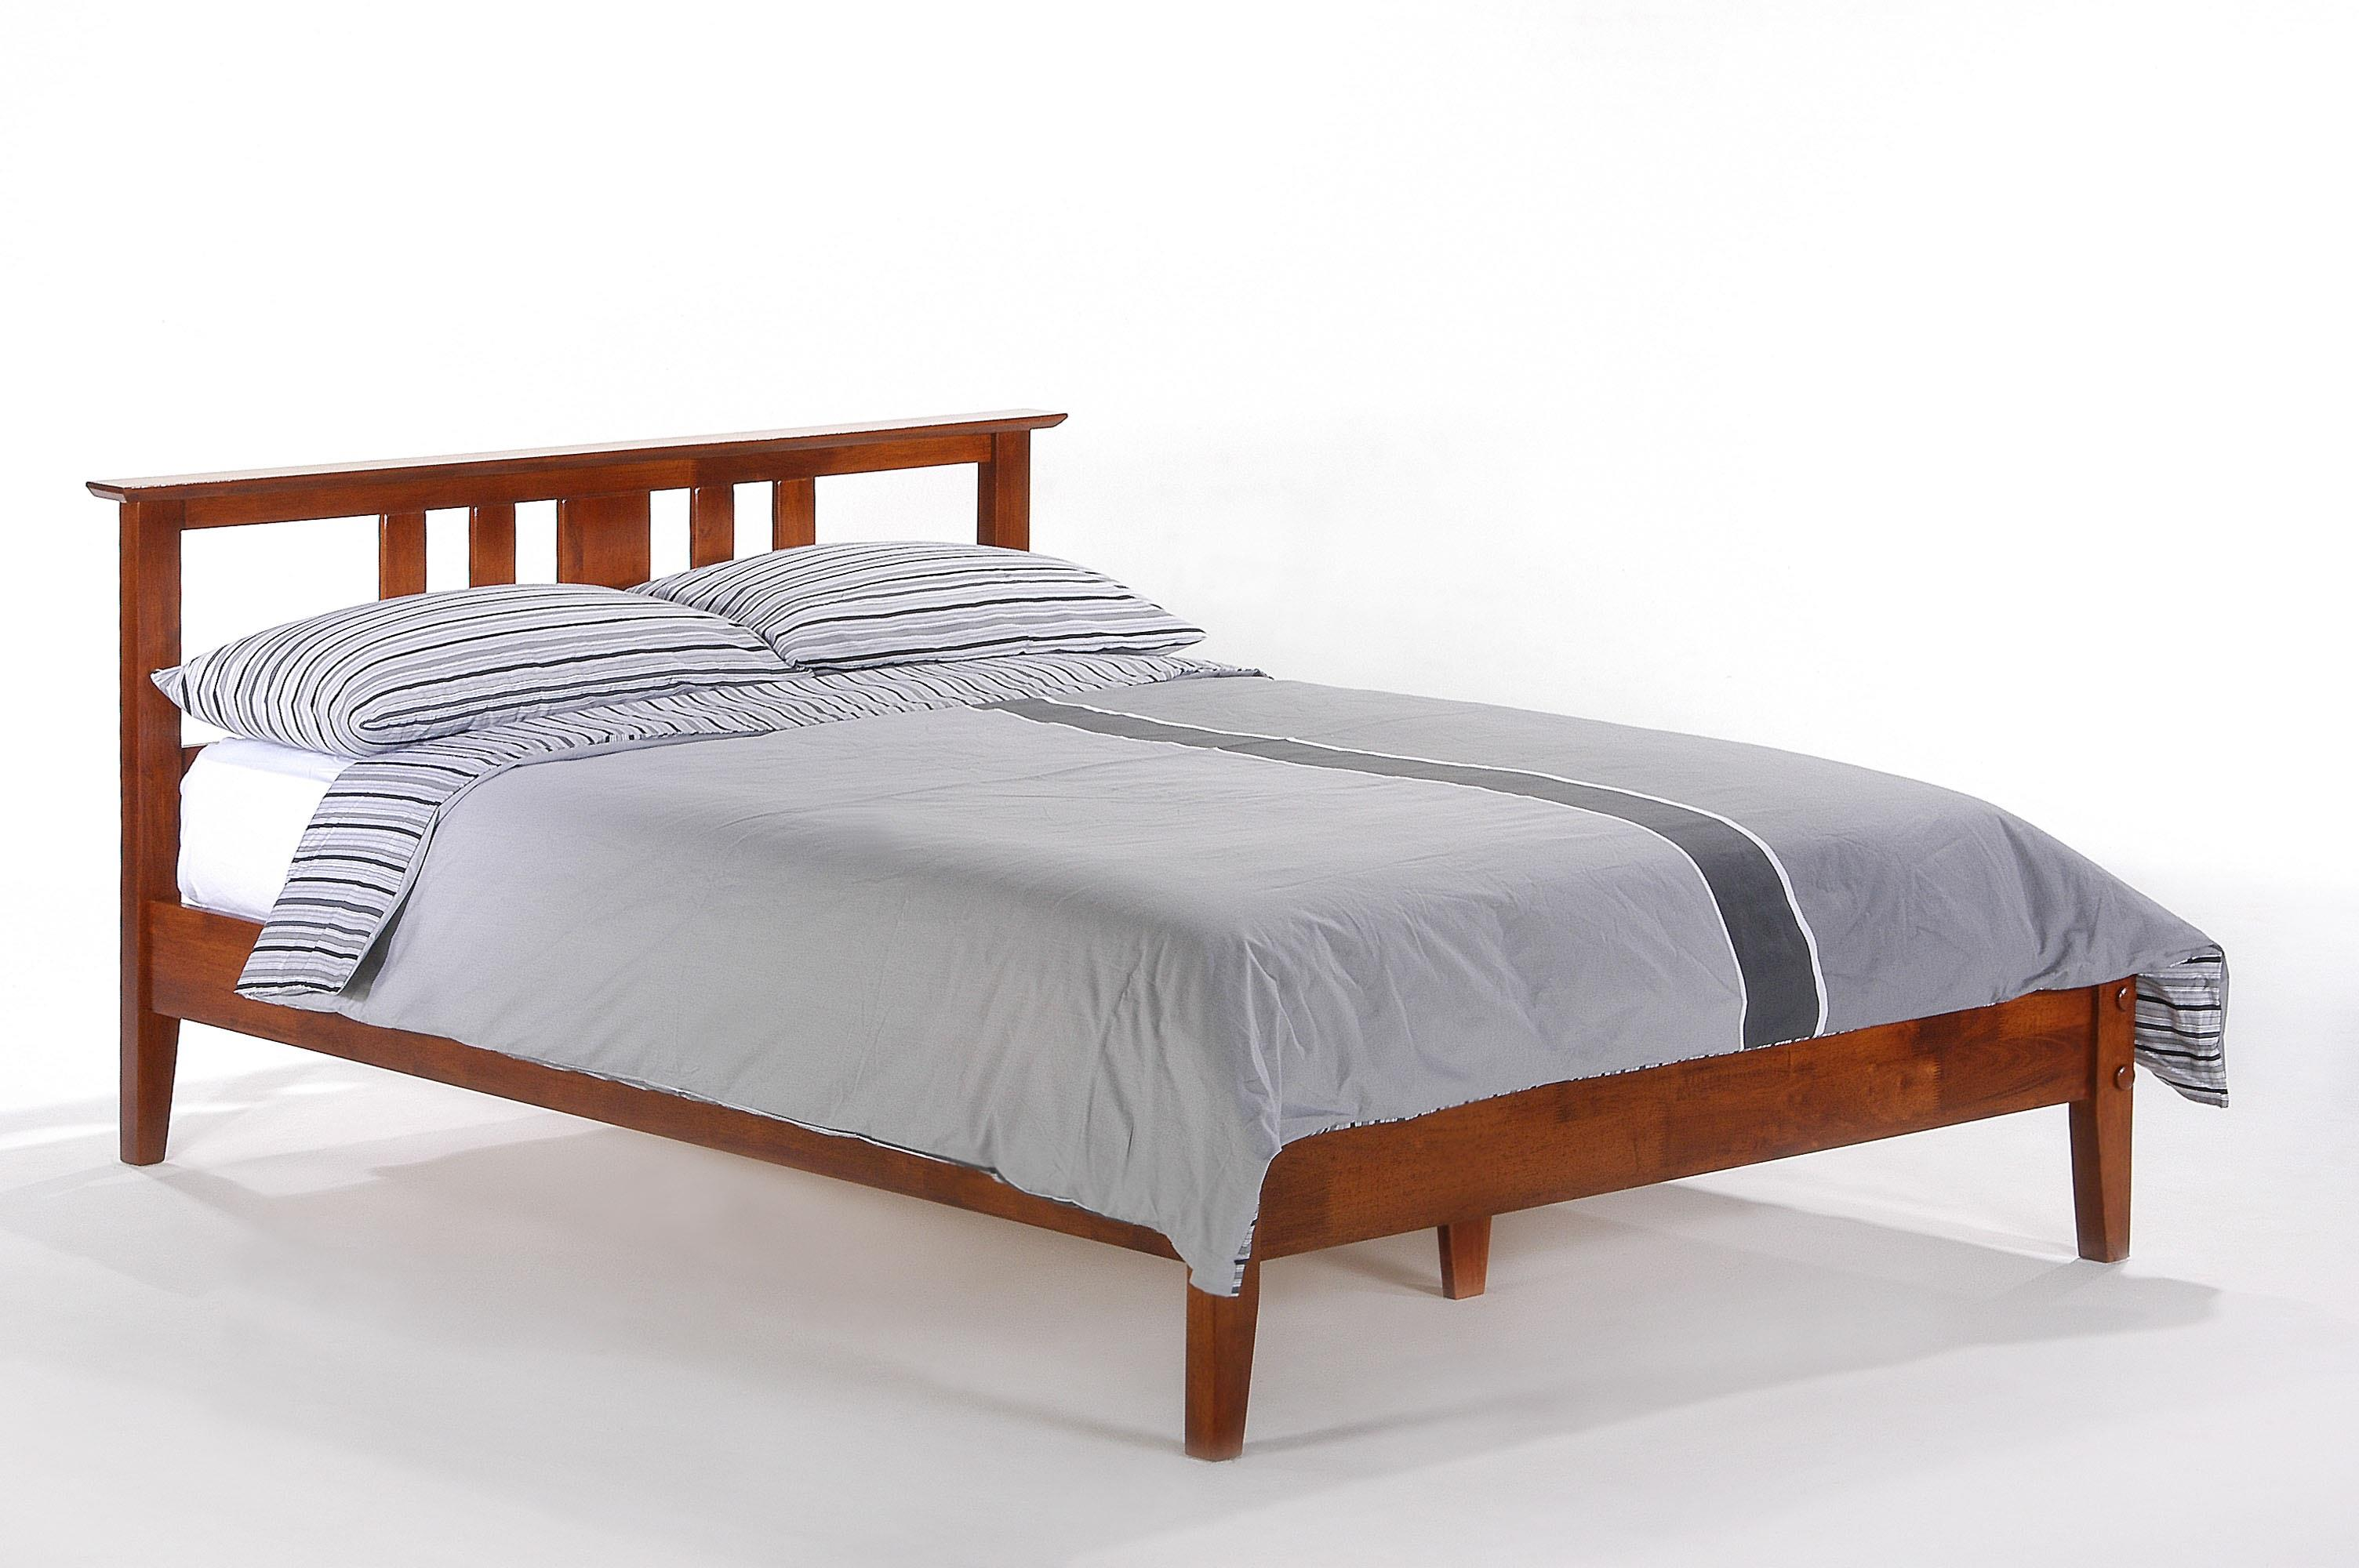 Thyme Full Bed by Pacific Manufacturing at SlumberWorld